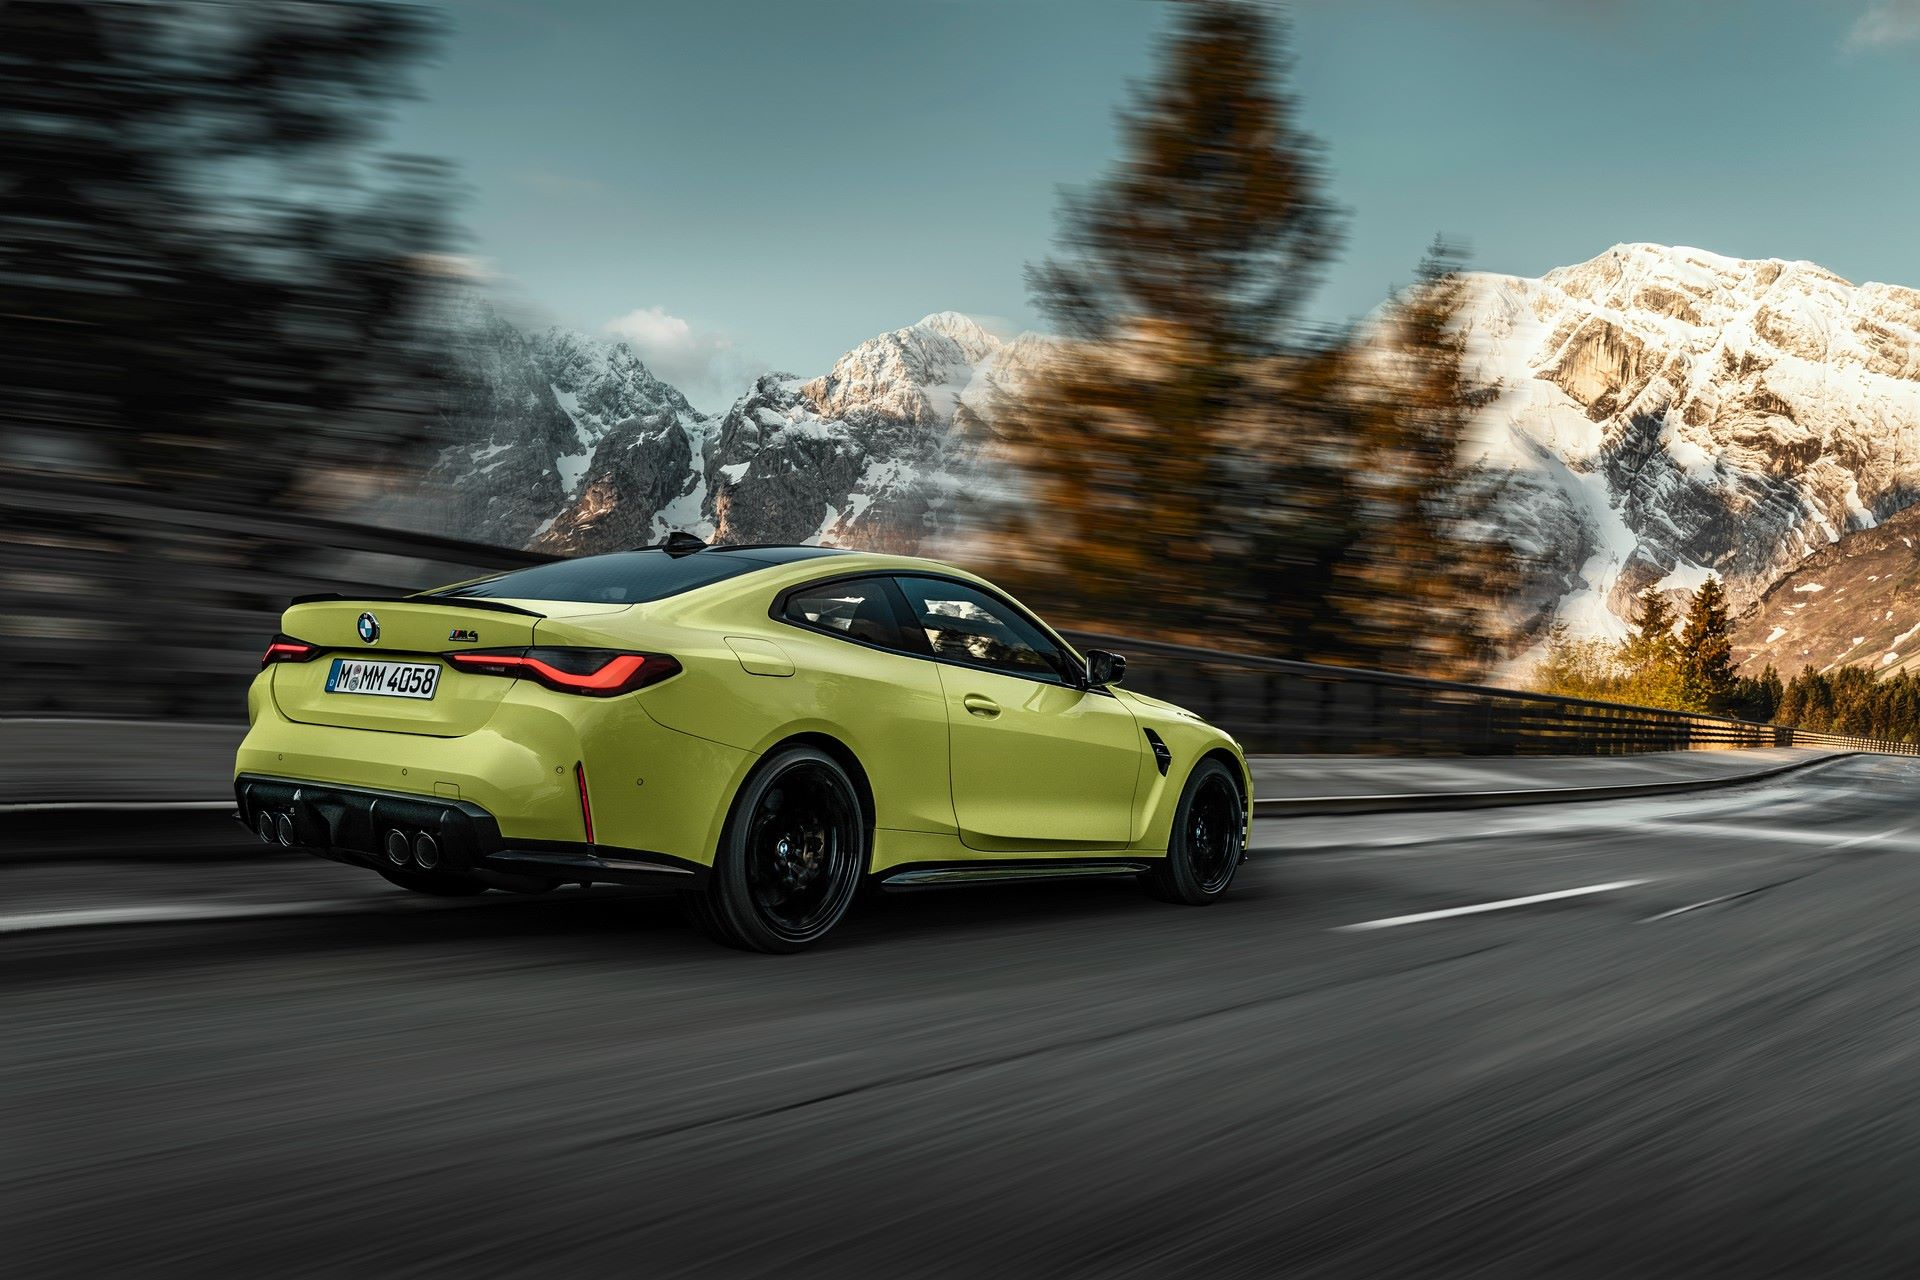 BMW-M3-And-M4-2021-26